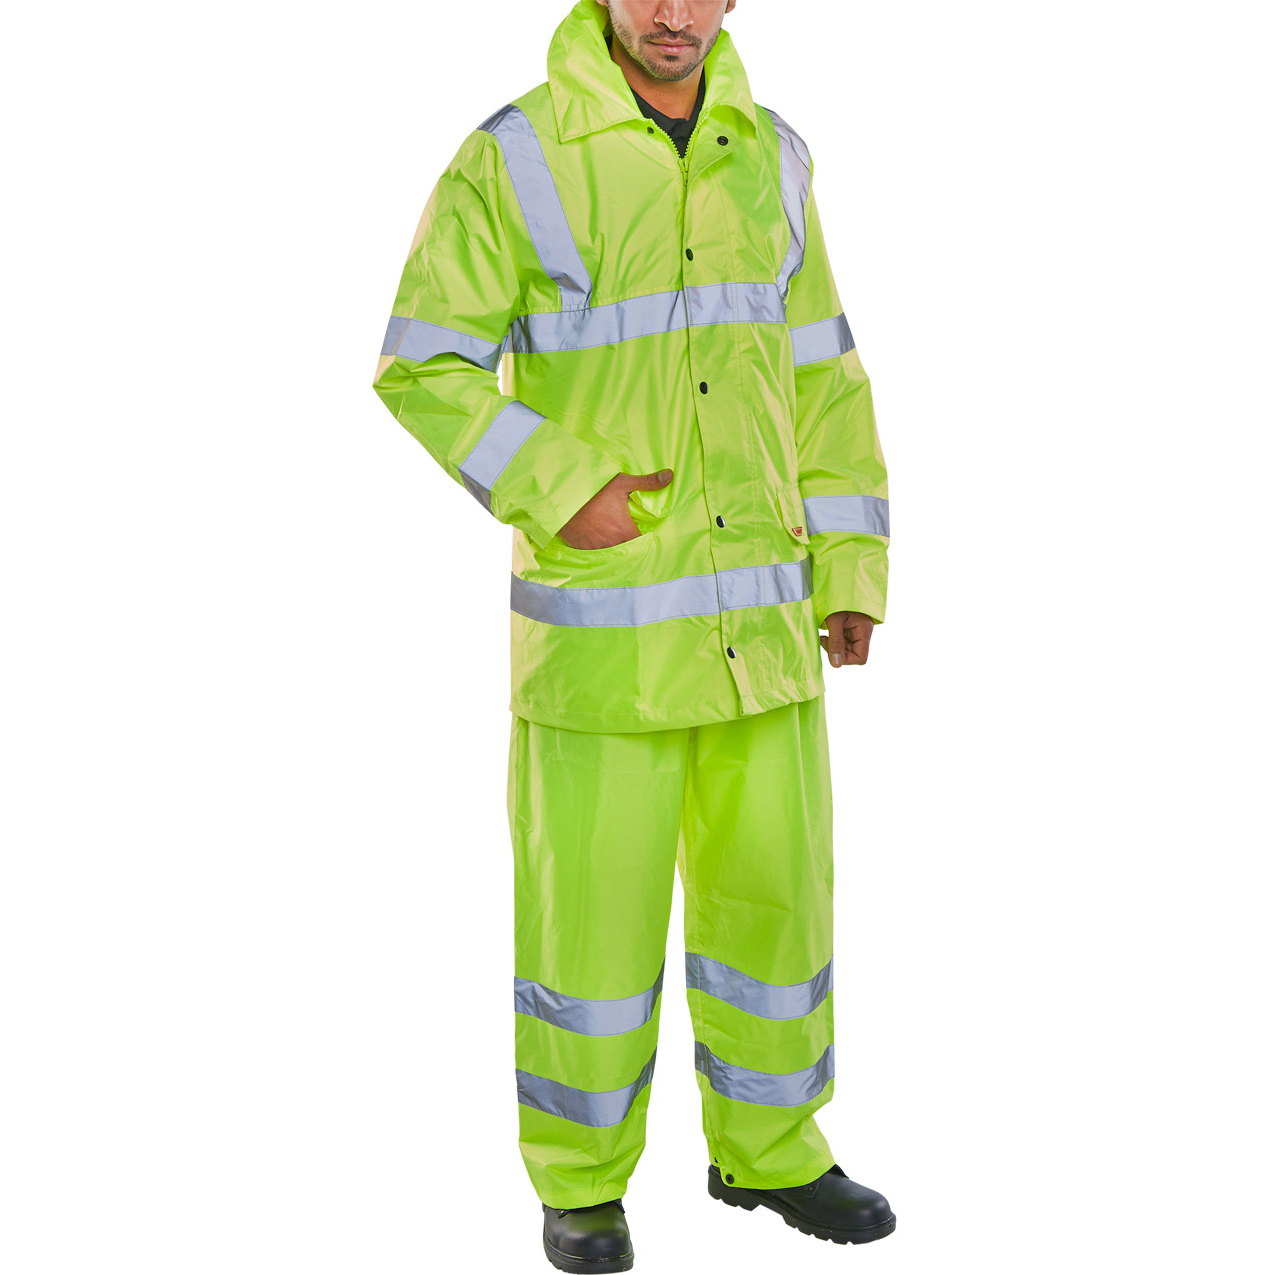 BSeen Hi-Vis L/Wt Suit Jkt/Trs EN ISO 20471 EN 343 4XL Saturn Yellow Ref TS8SY4XL *Up to 3 Day Leadtime*